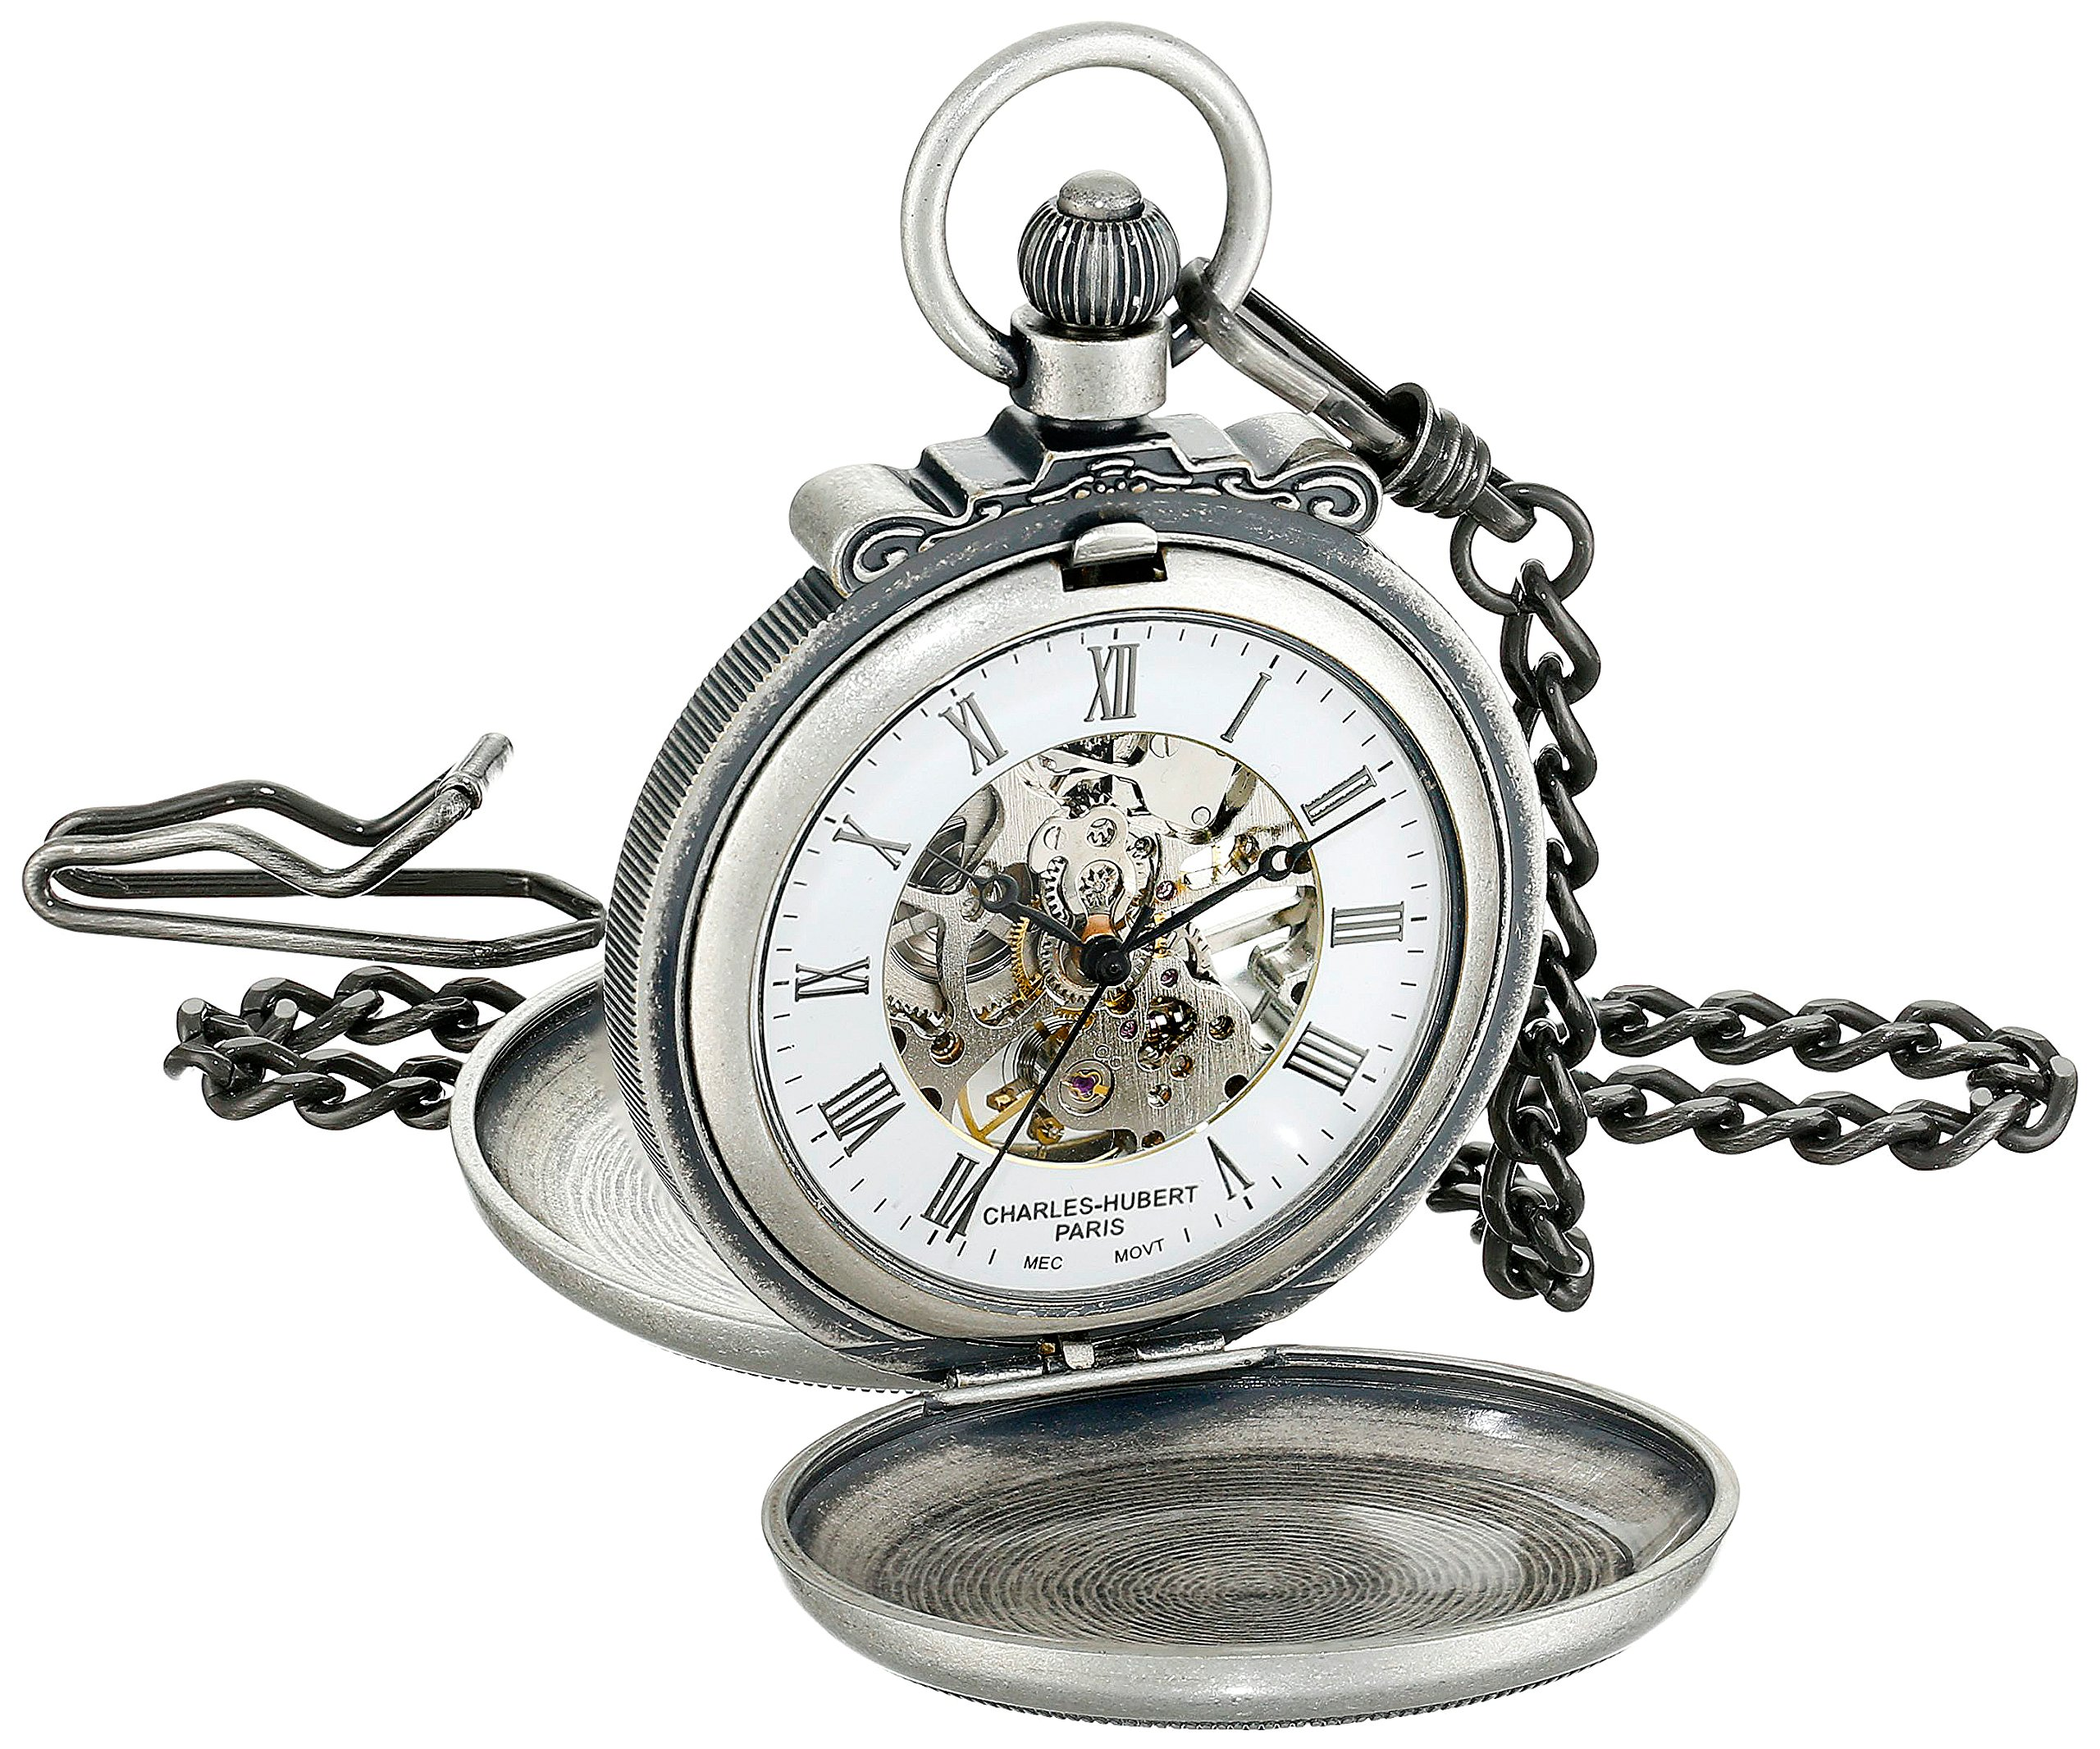 Charles-Hubert, Paris 3868-S Classic Collection Antiqued Finish Double Hunter Case Mechanical Pocket Watch by Charles-Hubert, Paris